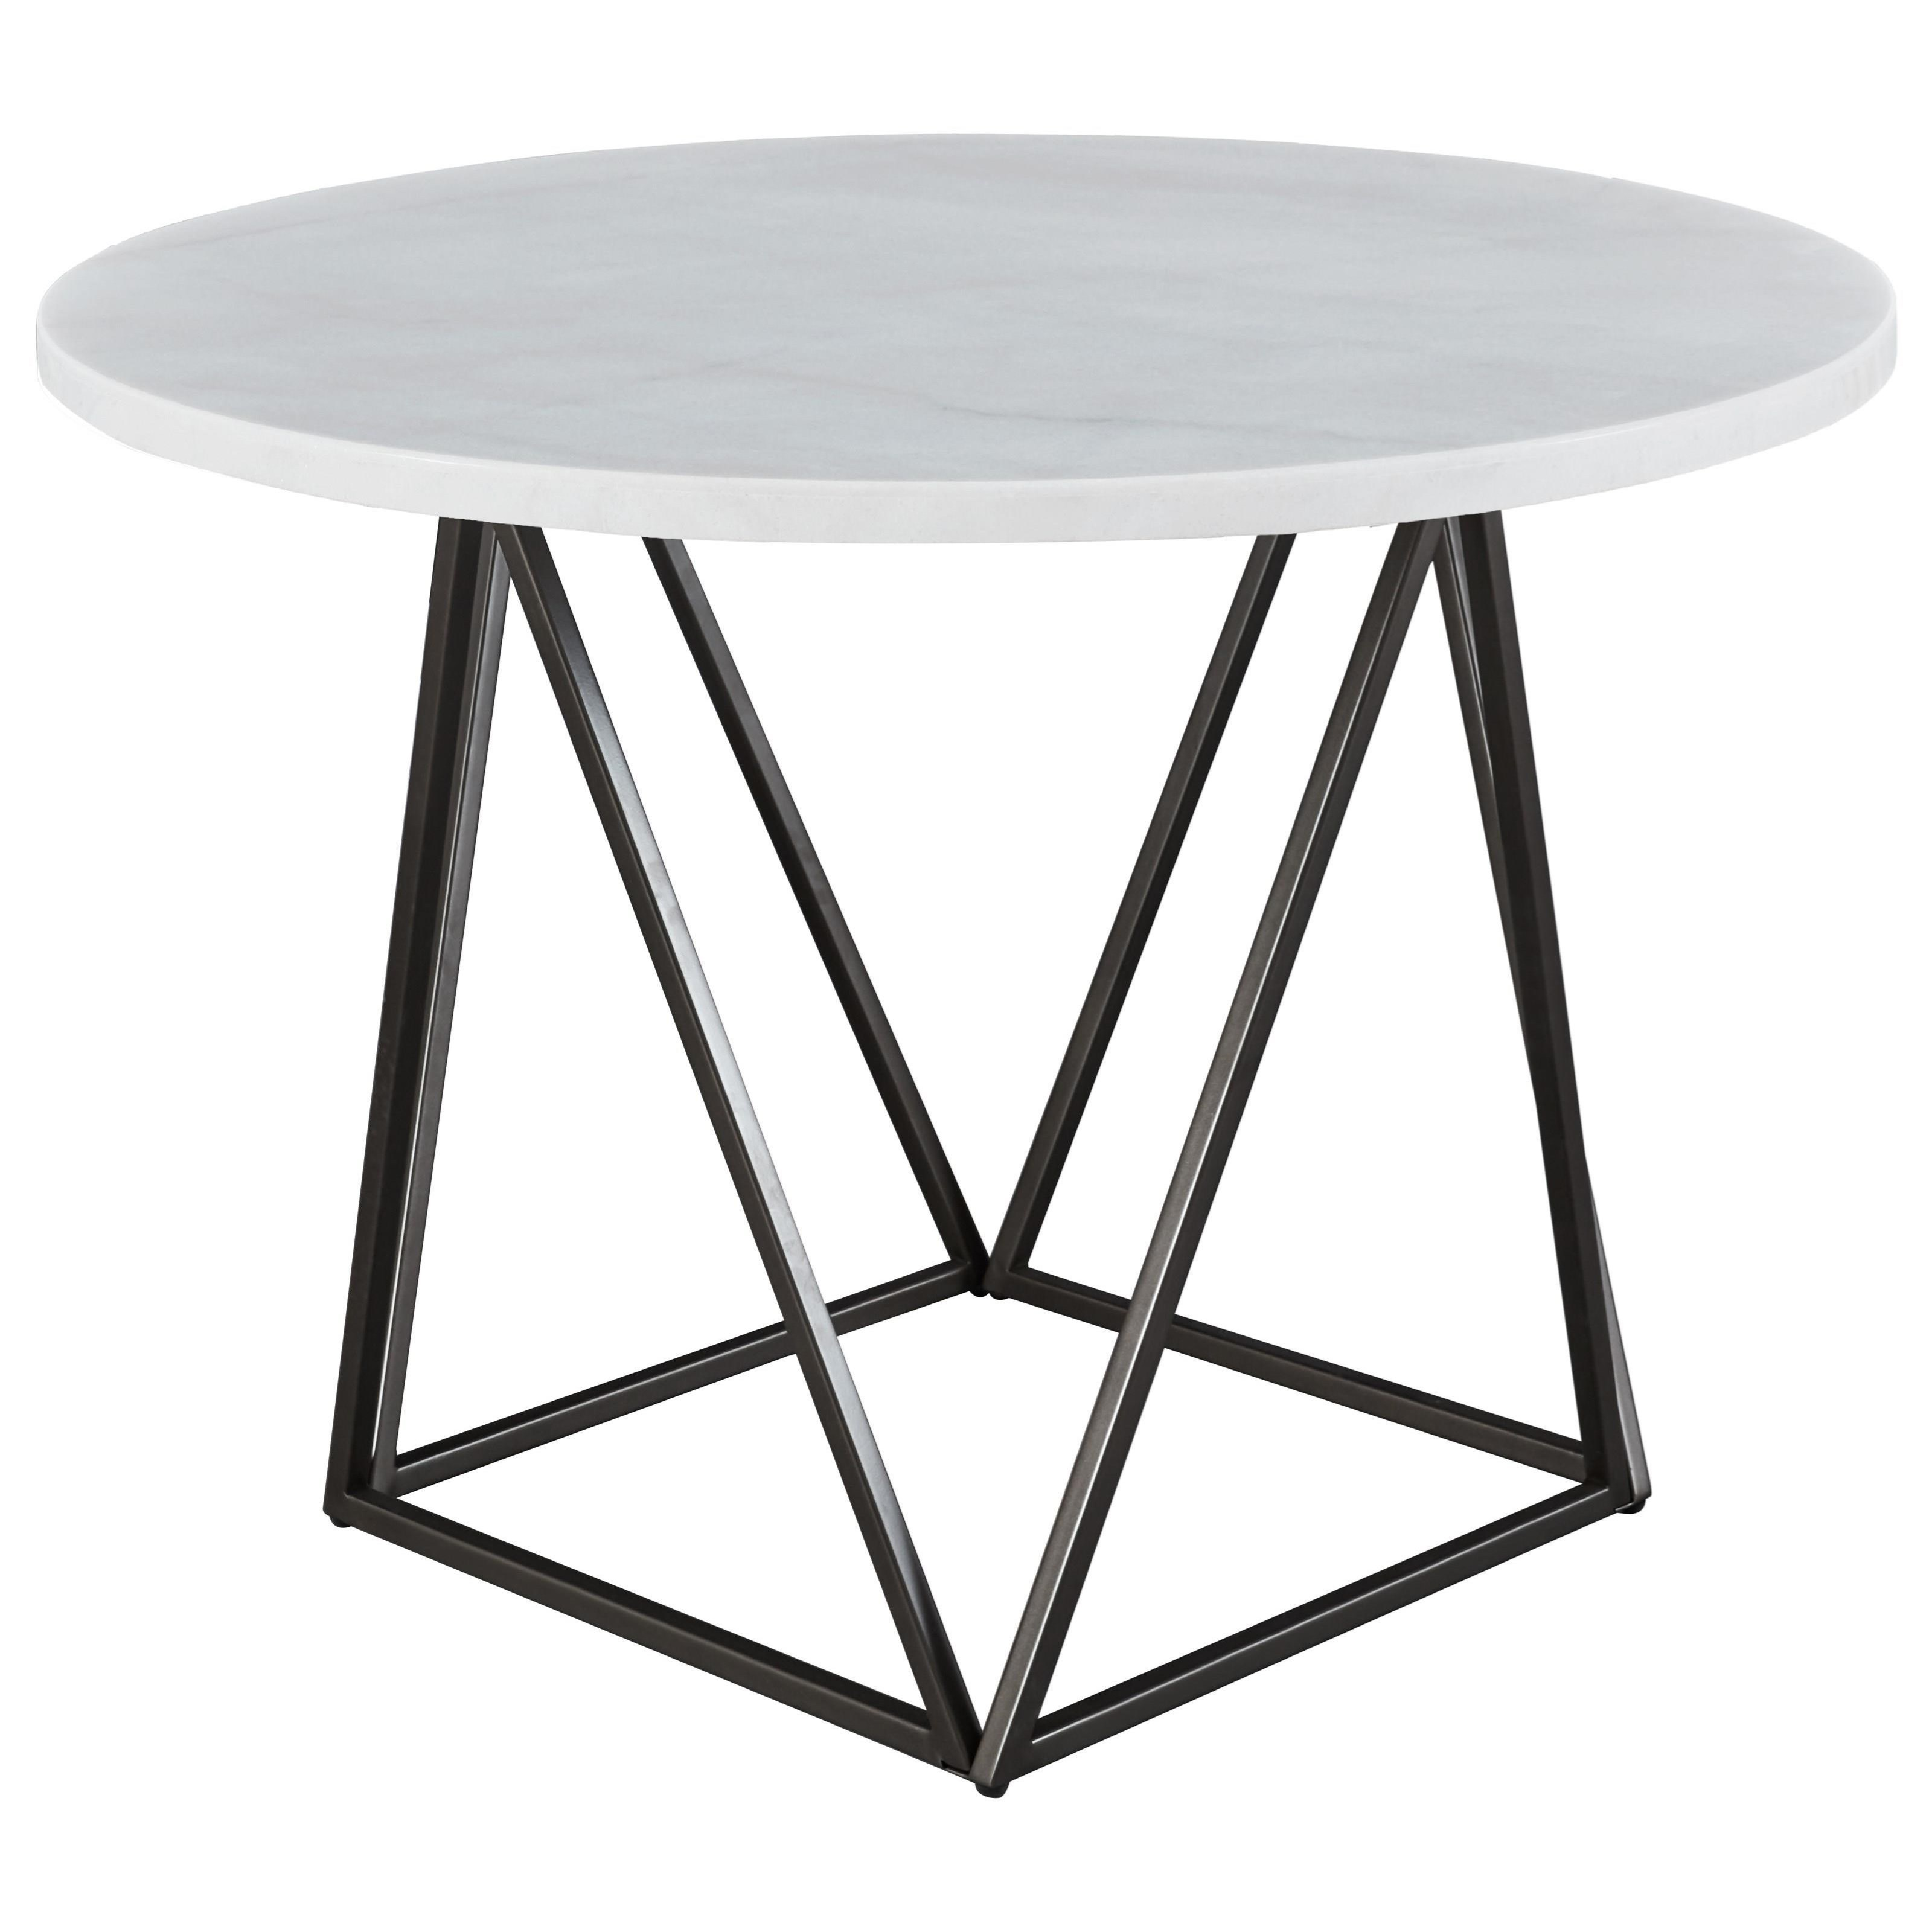 Ramona White Marble Top Round Dining Table by Steve Silver at Northeast Factory Direct